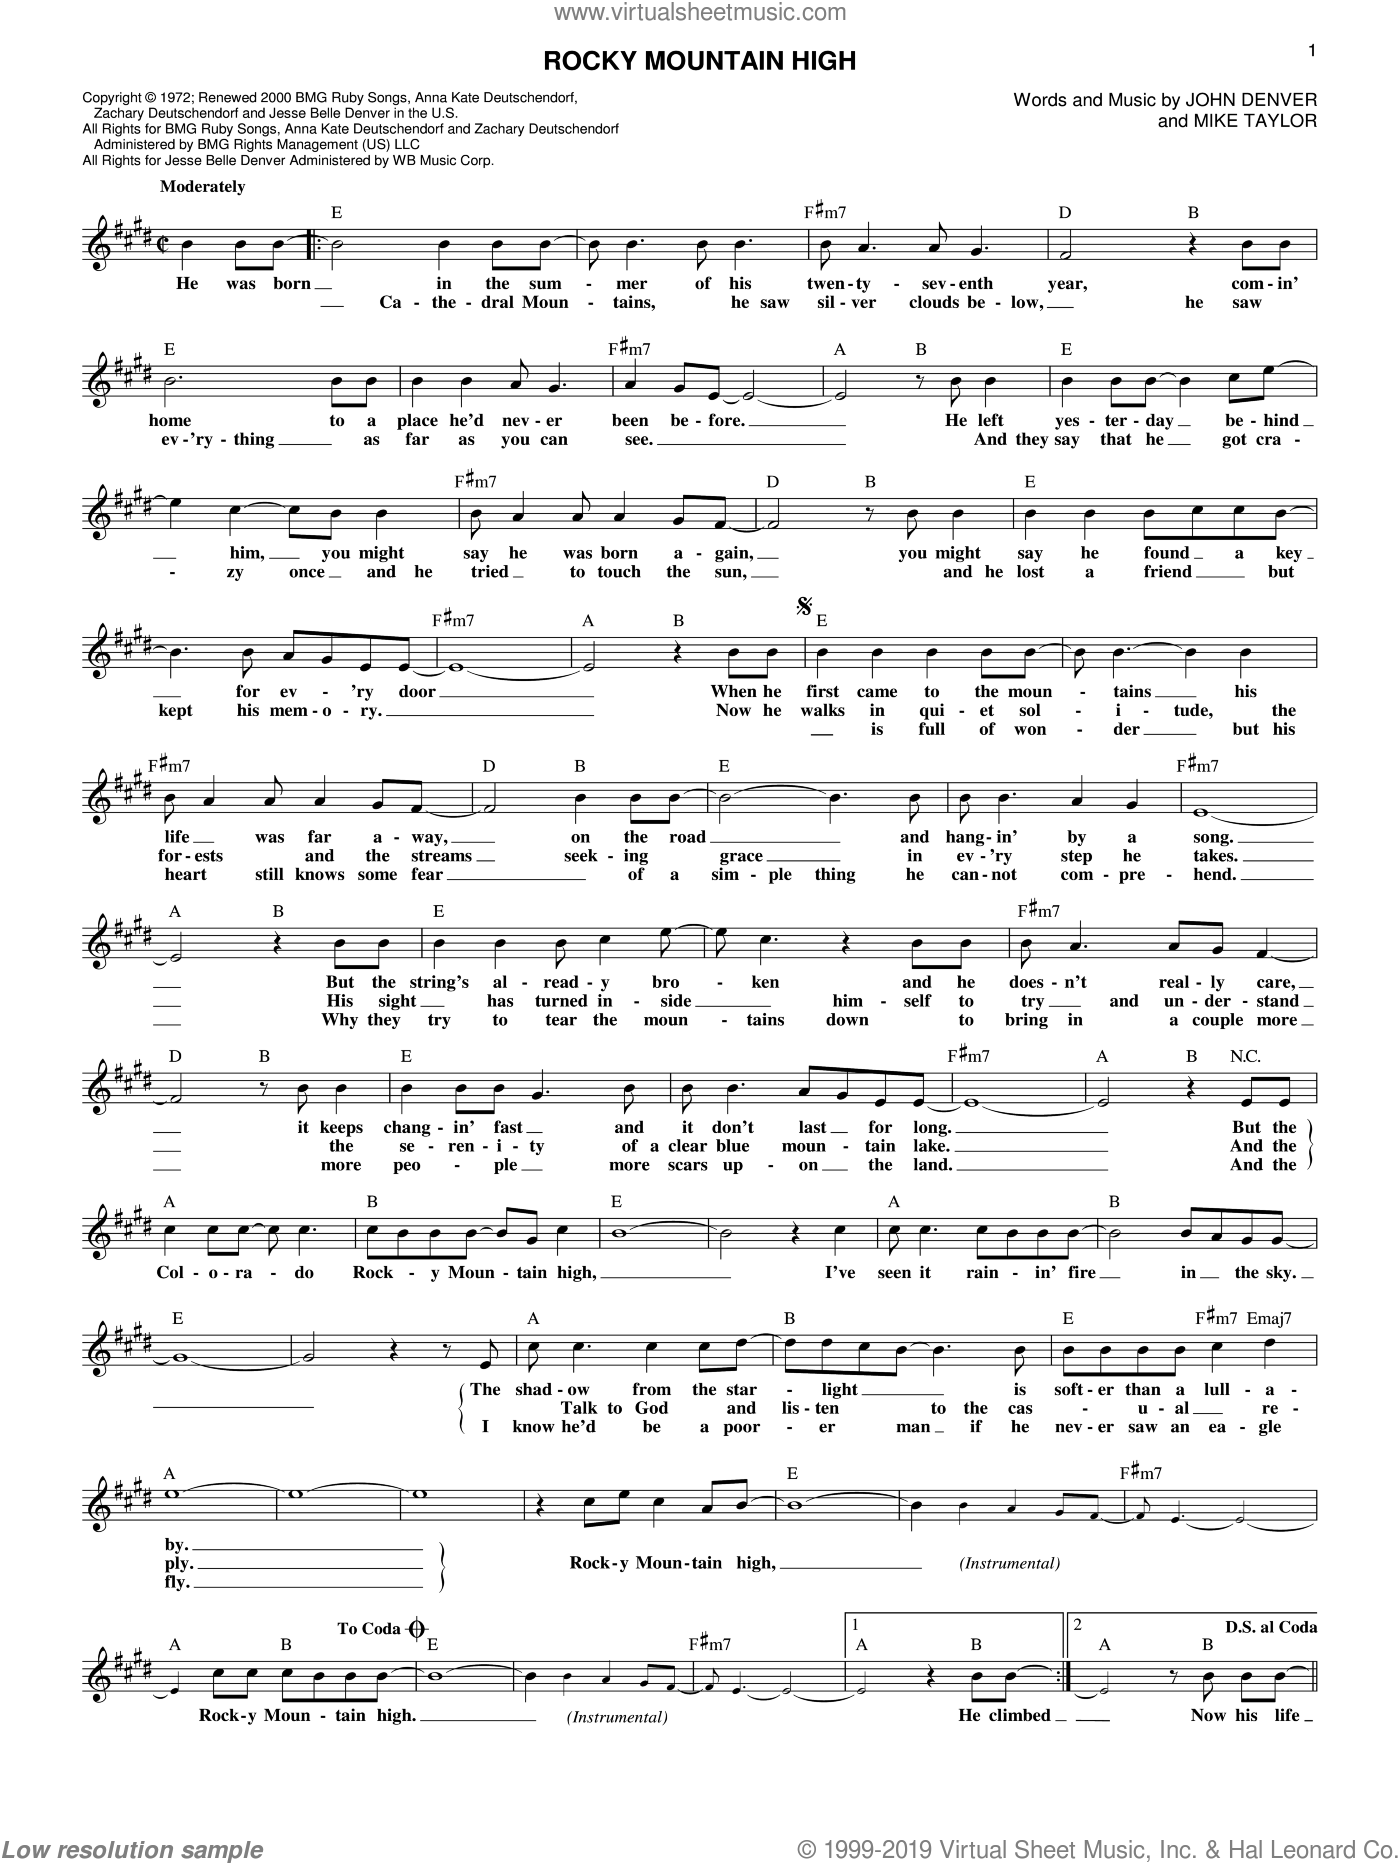 Rocky Mountain High sheet music for voice and other instruments (fake book) by John Denver and Mike Taylor, intermediate skill level